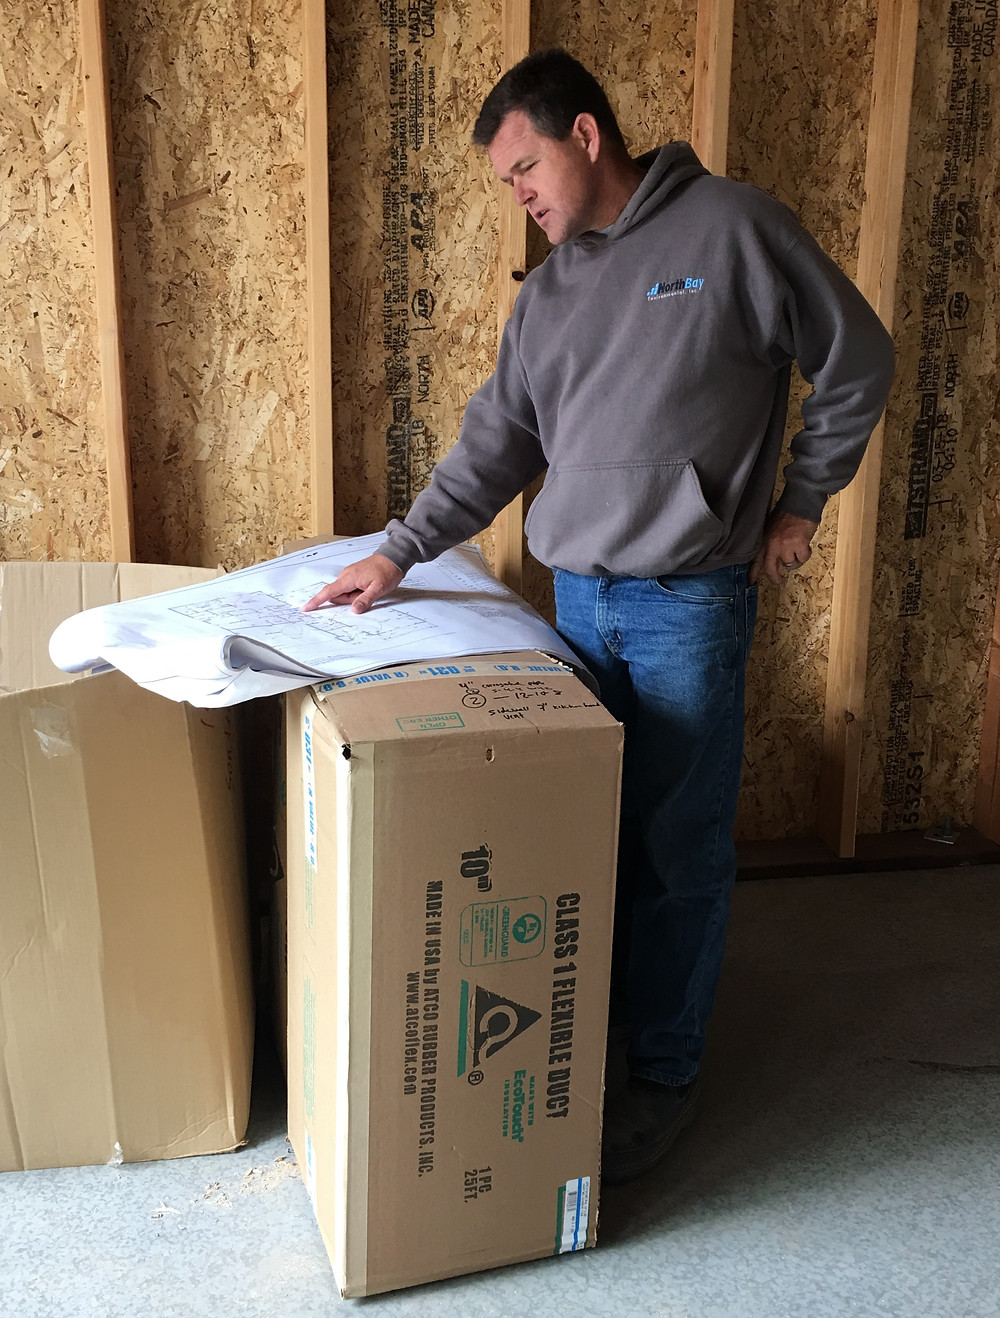 David Keith, President/CEO of Sonoma County Builders reviews plans on project in Fountaingrove in Santa Rosa CA